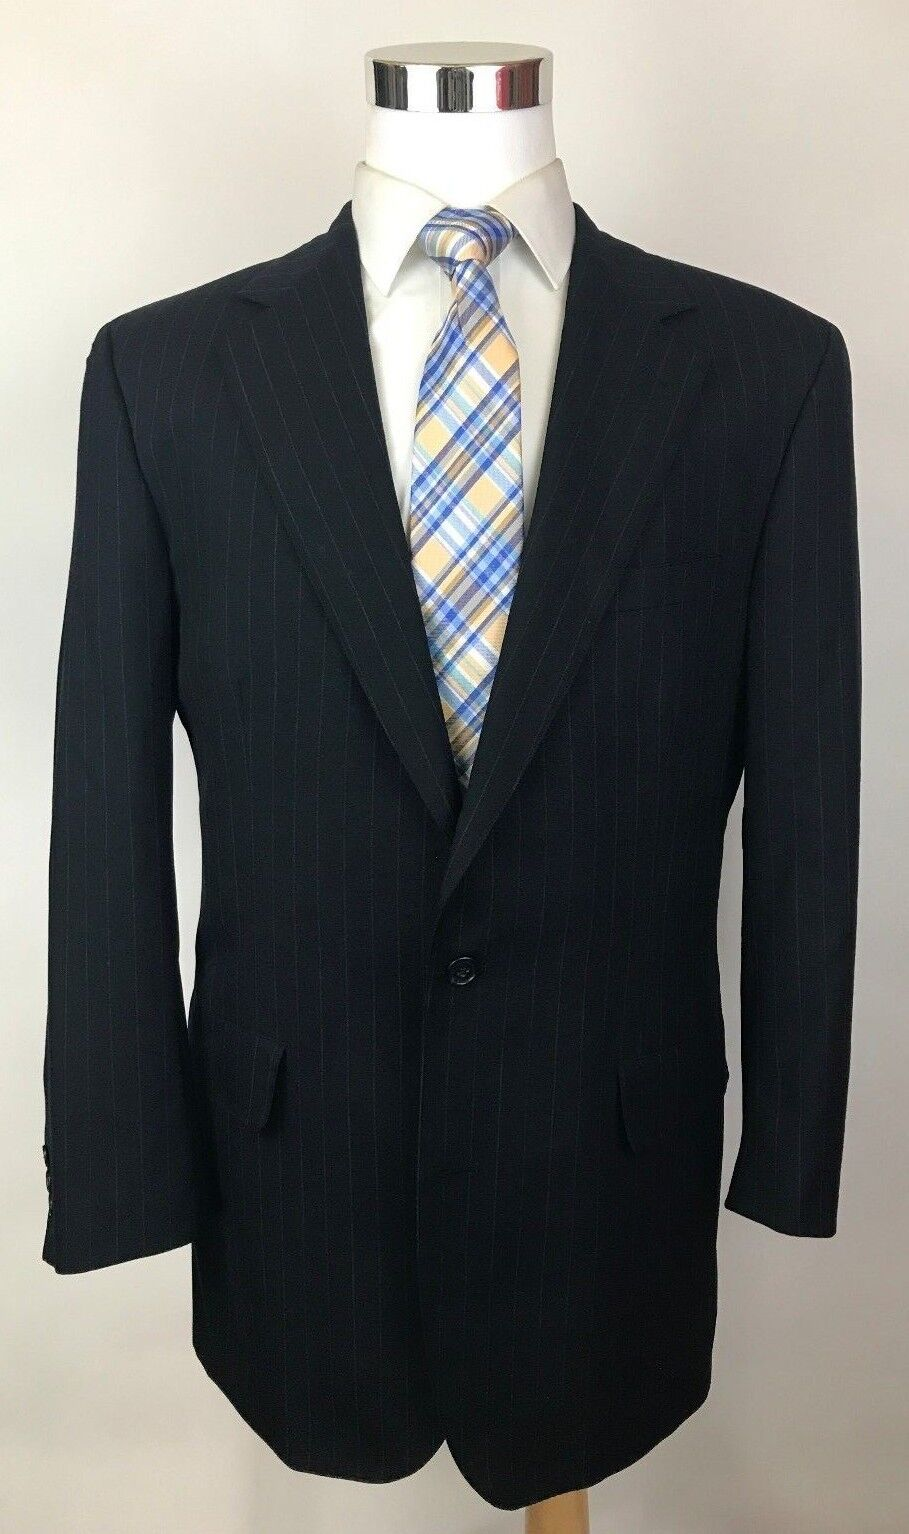 Brooks Bredhers Brooksease Charcoal Striped Slim Fit 2-Btn Wool Suit 41L 32x31